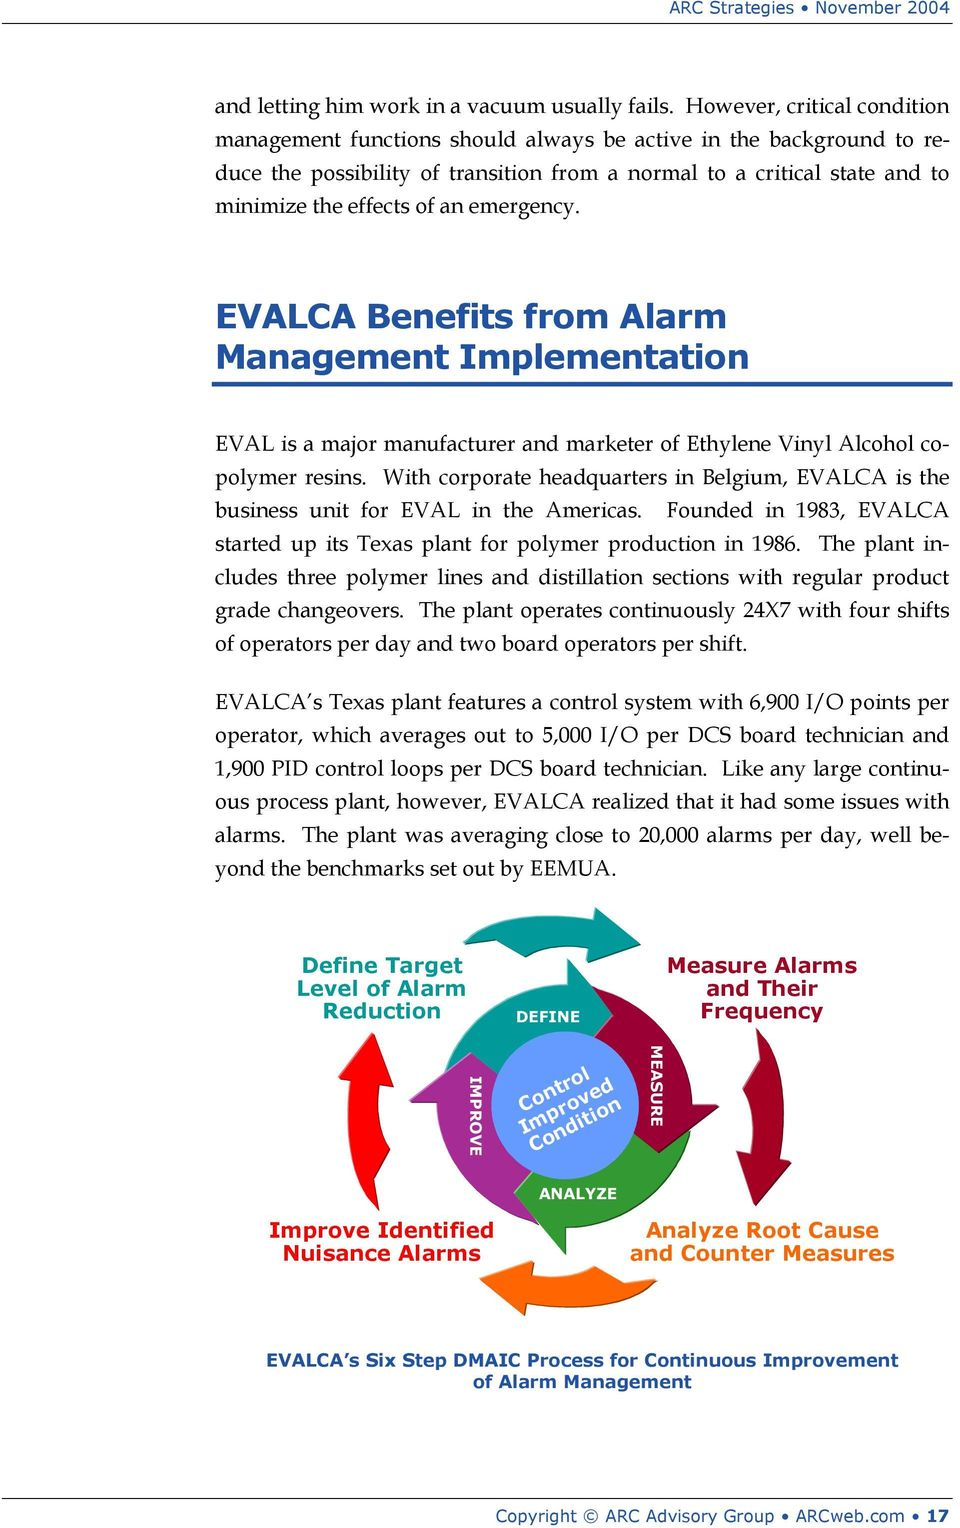 emergency. EVALCA Benefits from Alarm Management Implementation EVAL is a major manufacturer and marketer of Ethylene Vinyl Alcohol copolymer resins.